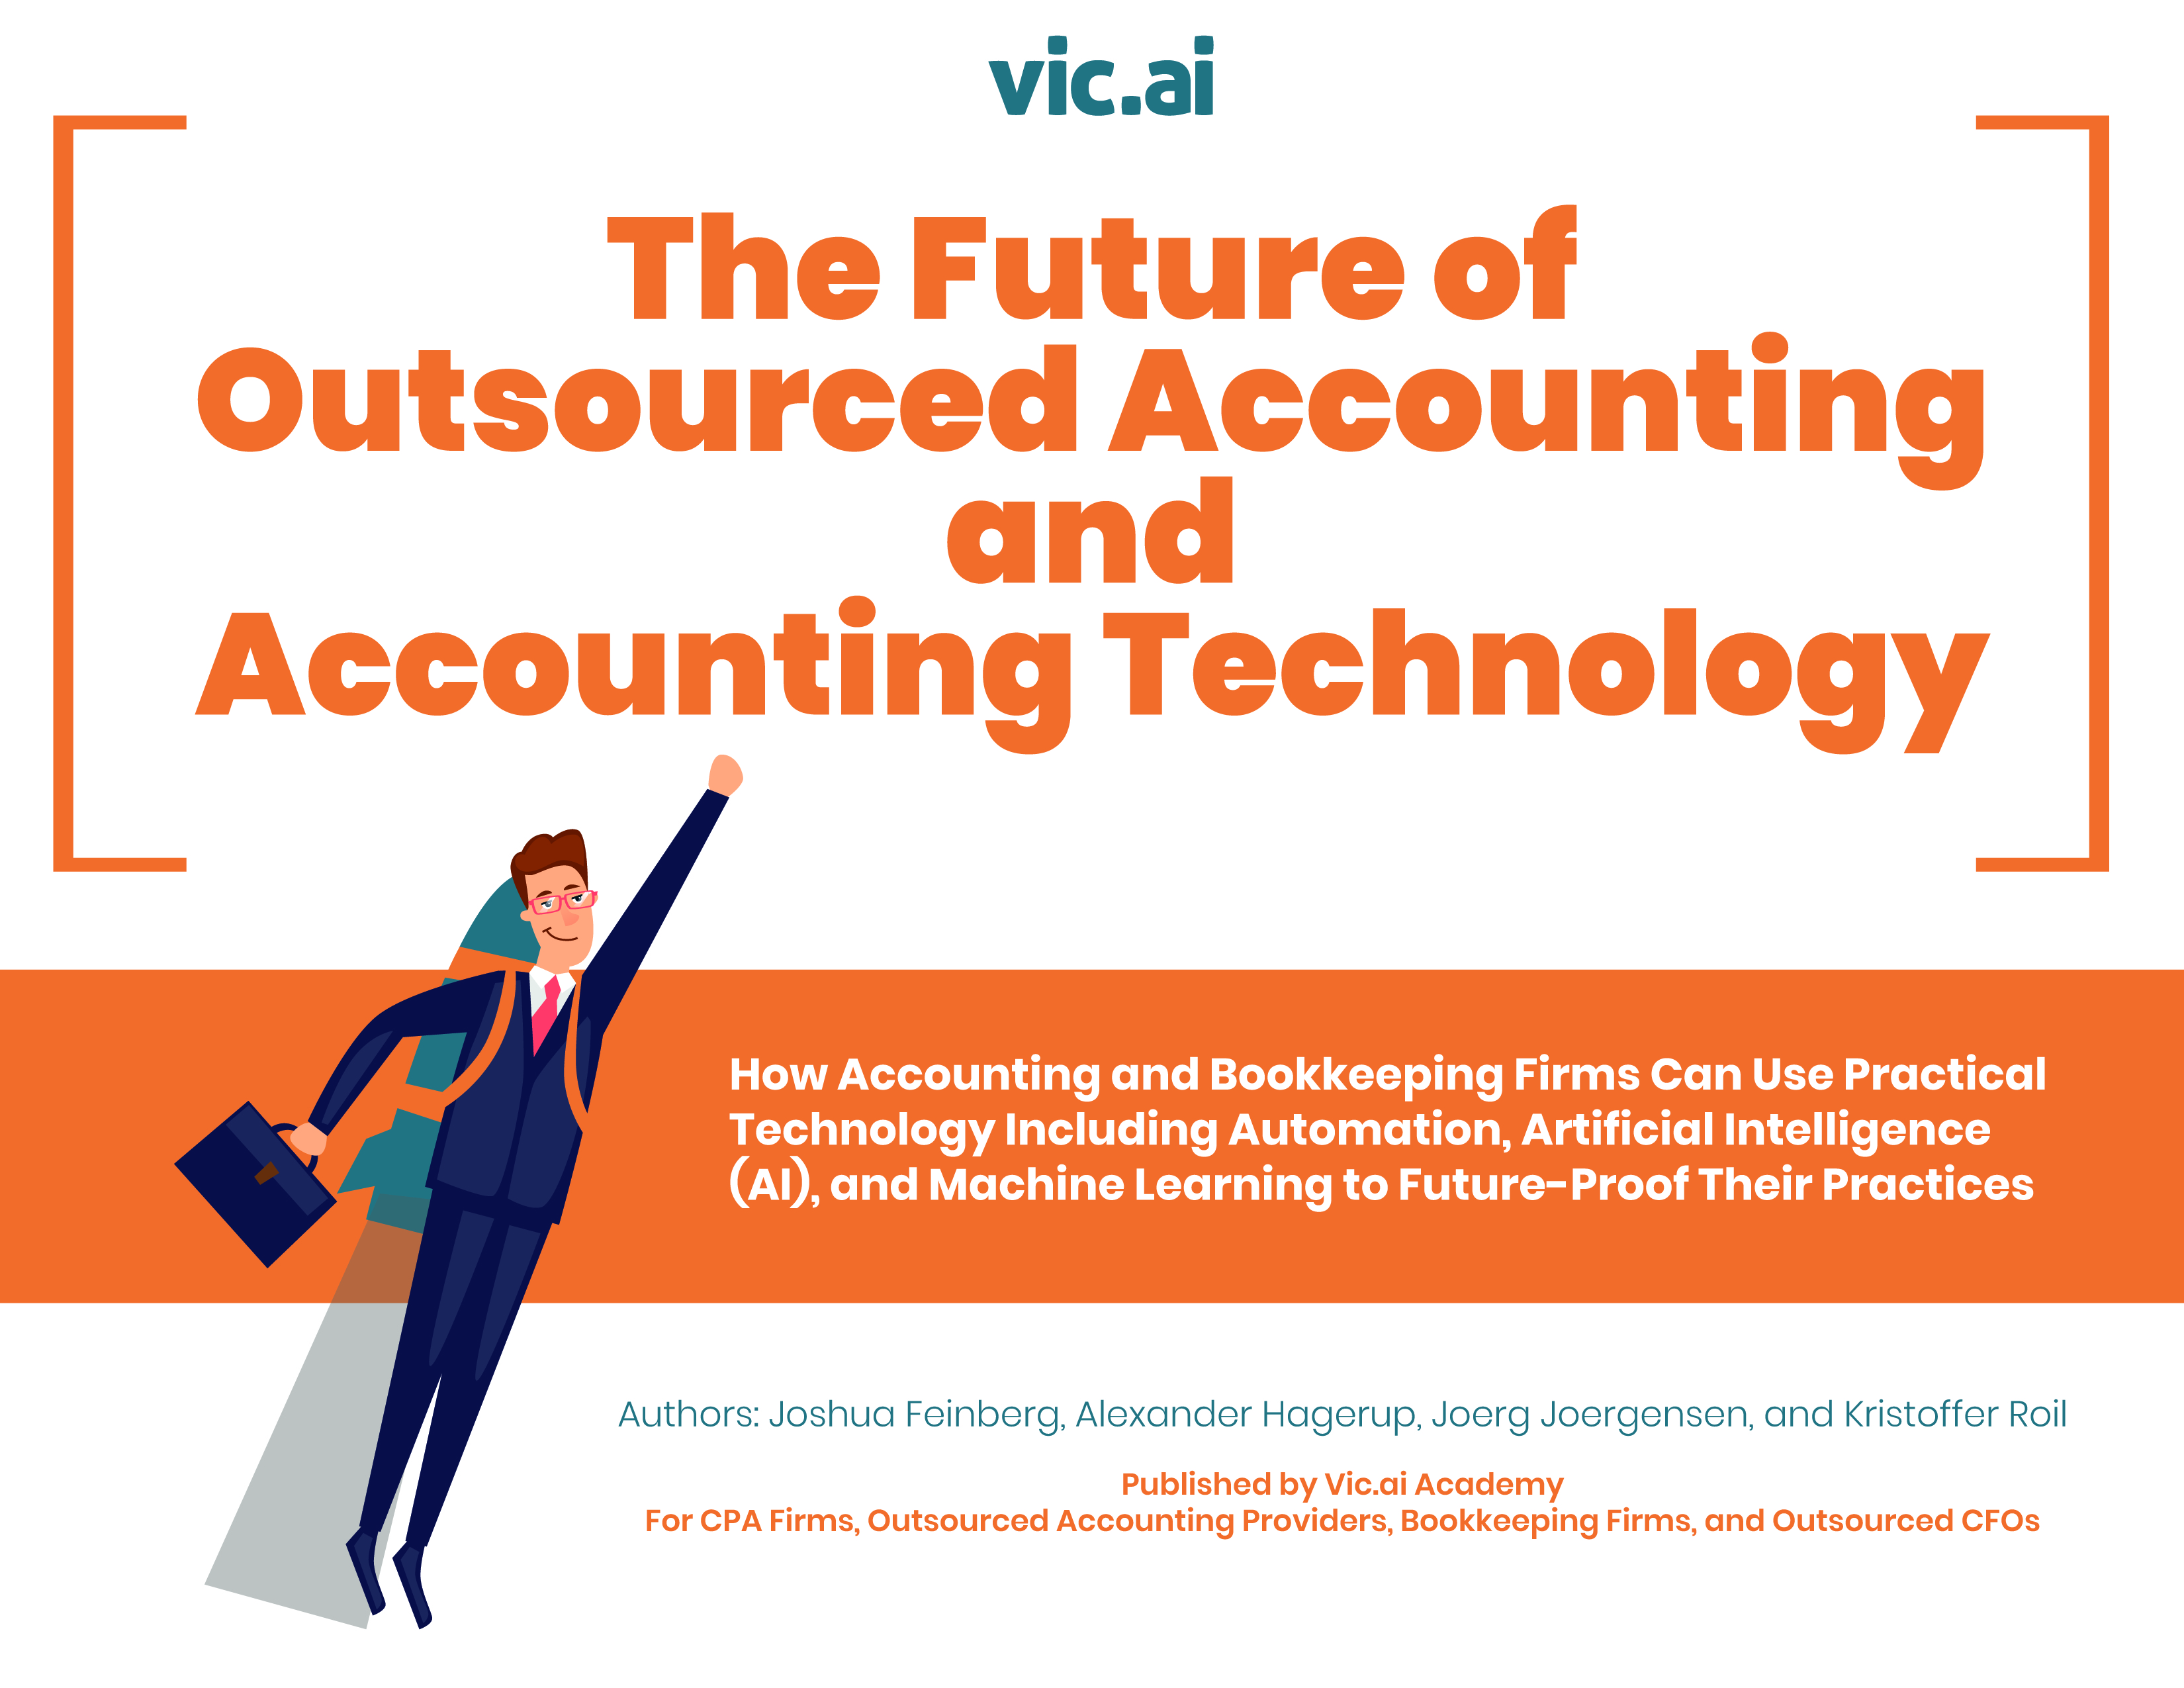 Plus... when you pre-schedule a demo in advance with Via.ai at QuickBooks Connect, you'll get a free copy of our newly published 180 page workbook on The Future of Outsourced Accounting and Accounting Technology (a $49 value) (while supplies last).